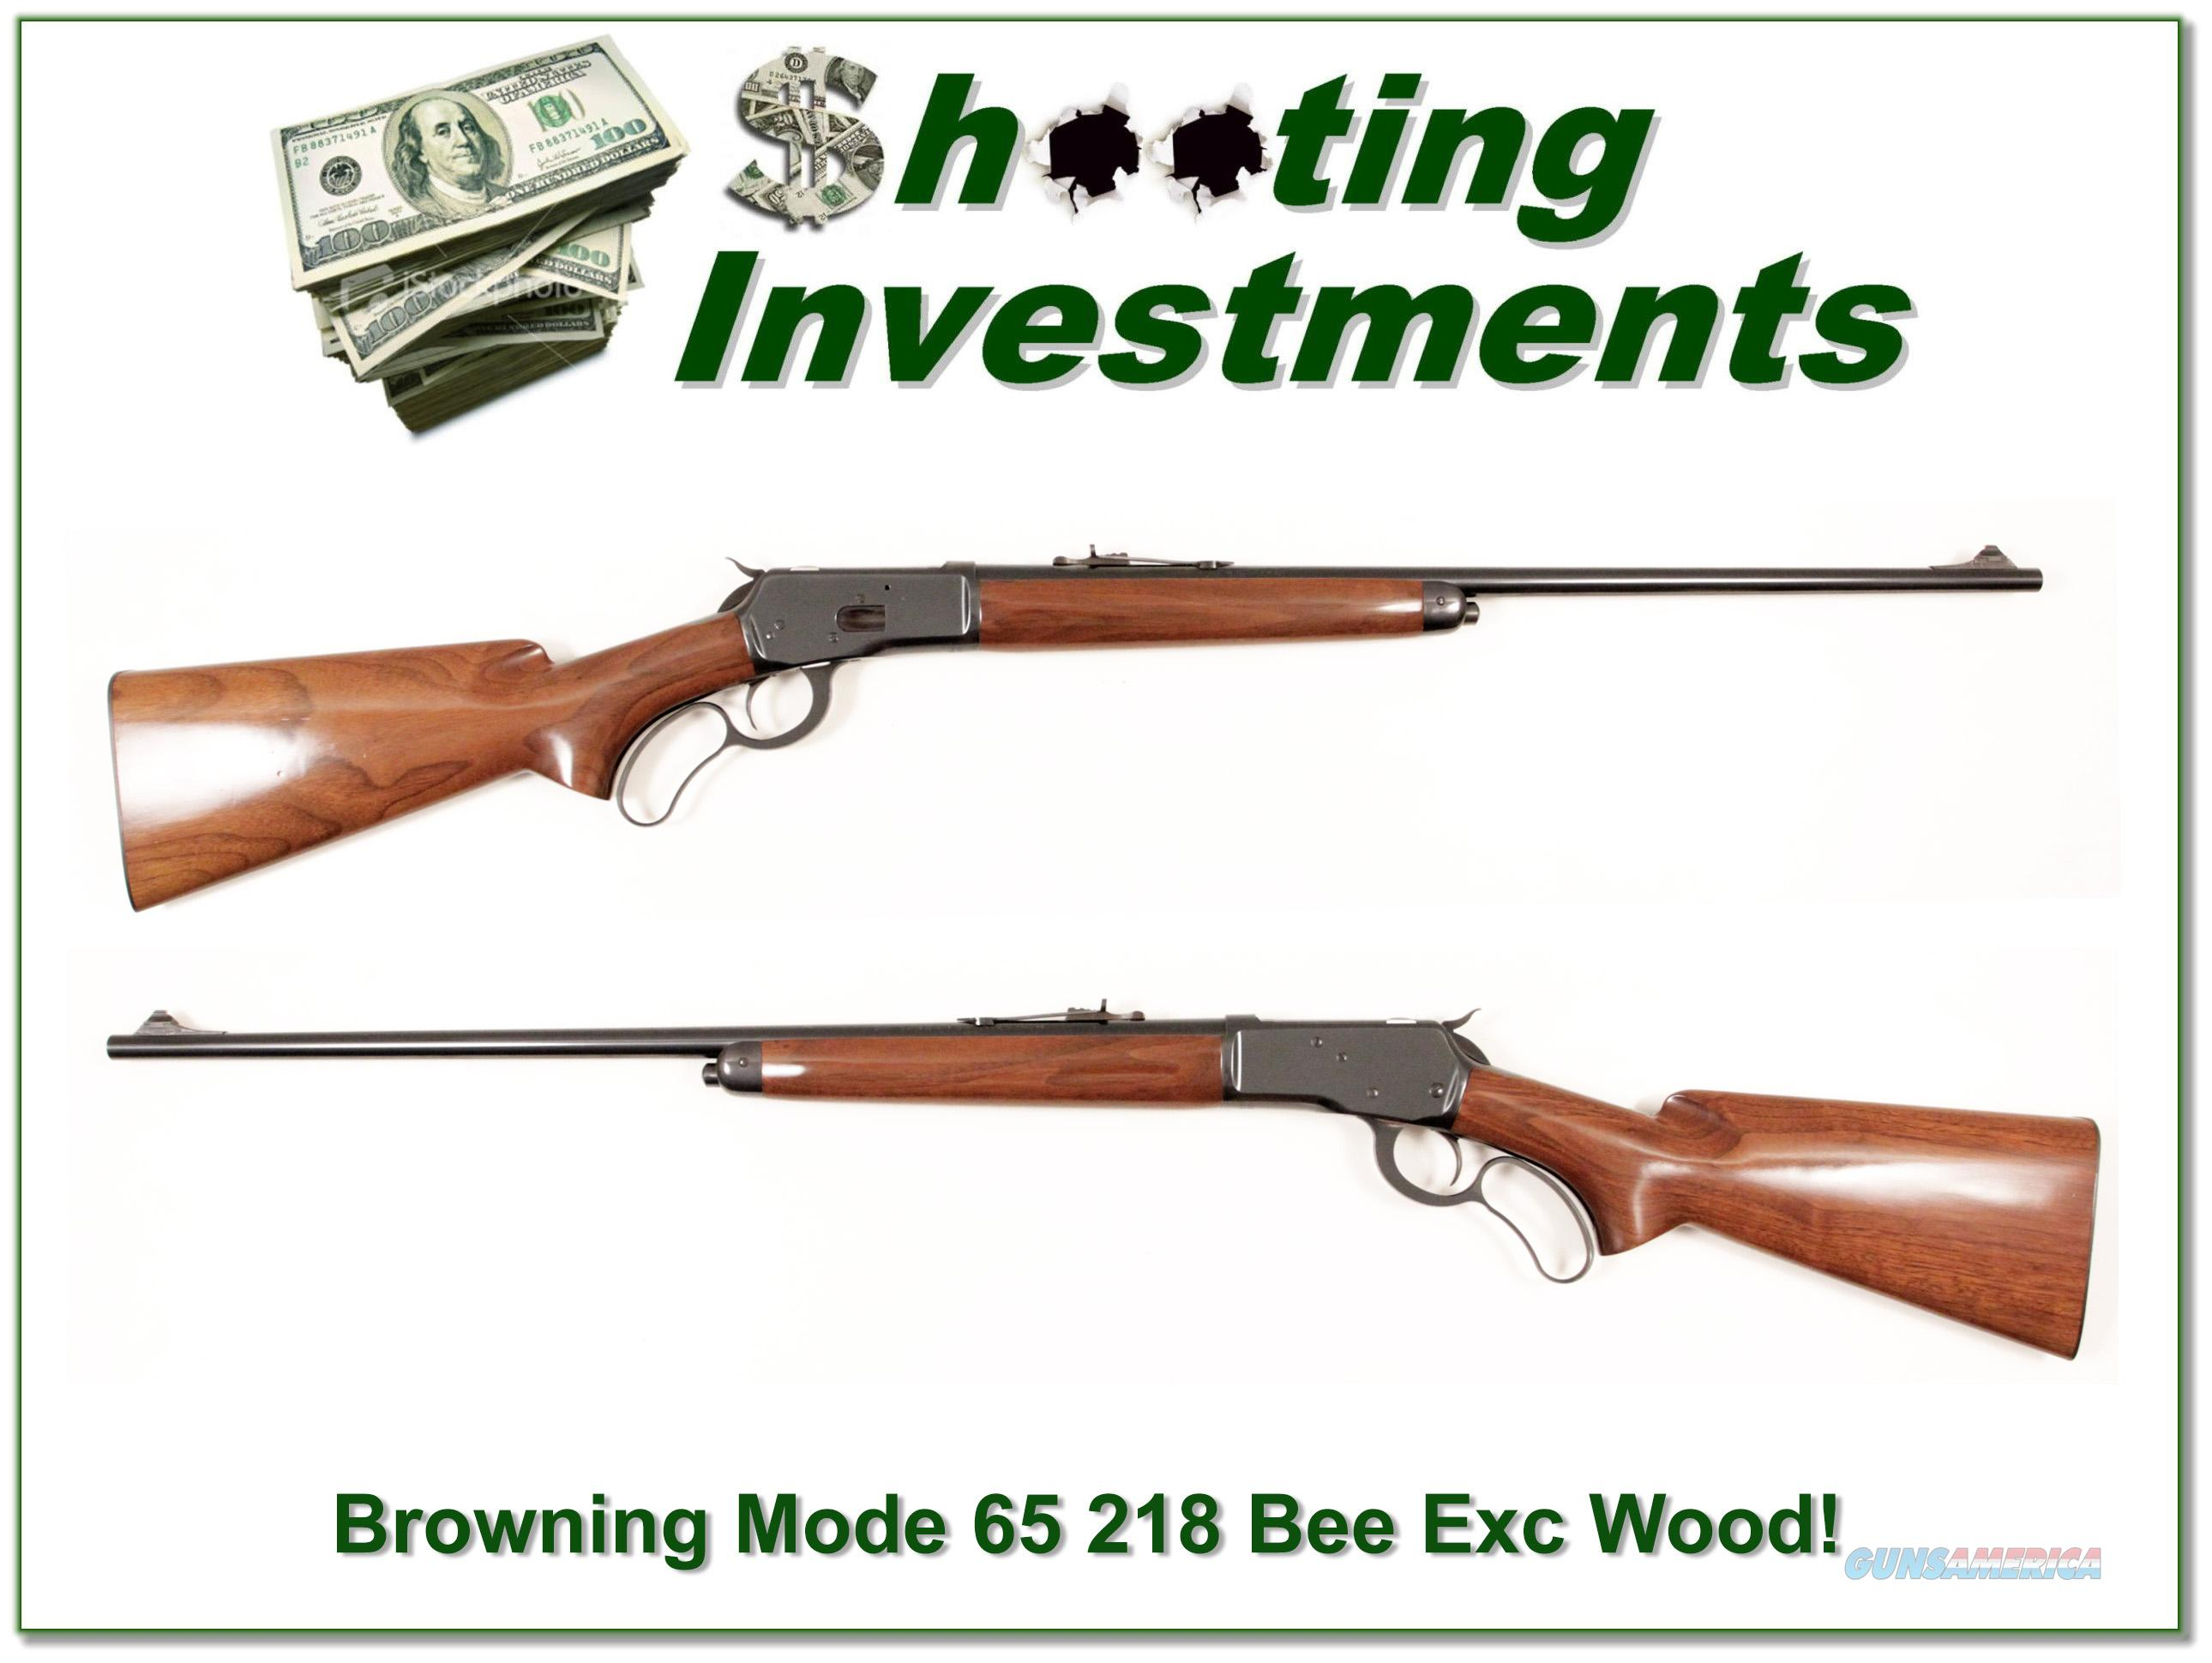 Browning Model 65 218 Bee!  Guns > Rifles > Browning Rifles > Lever Action